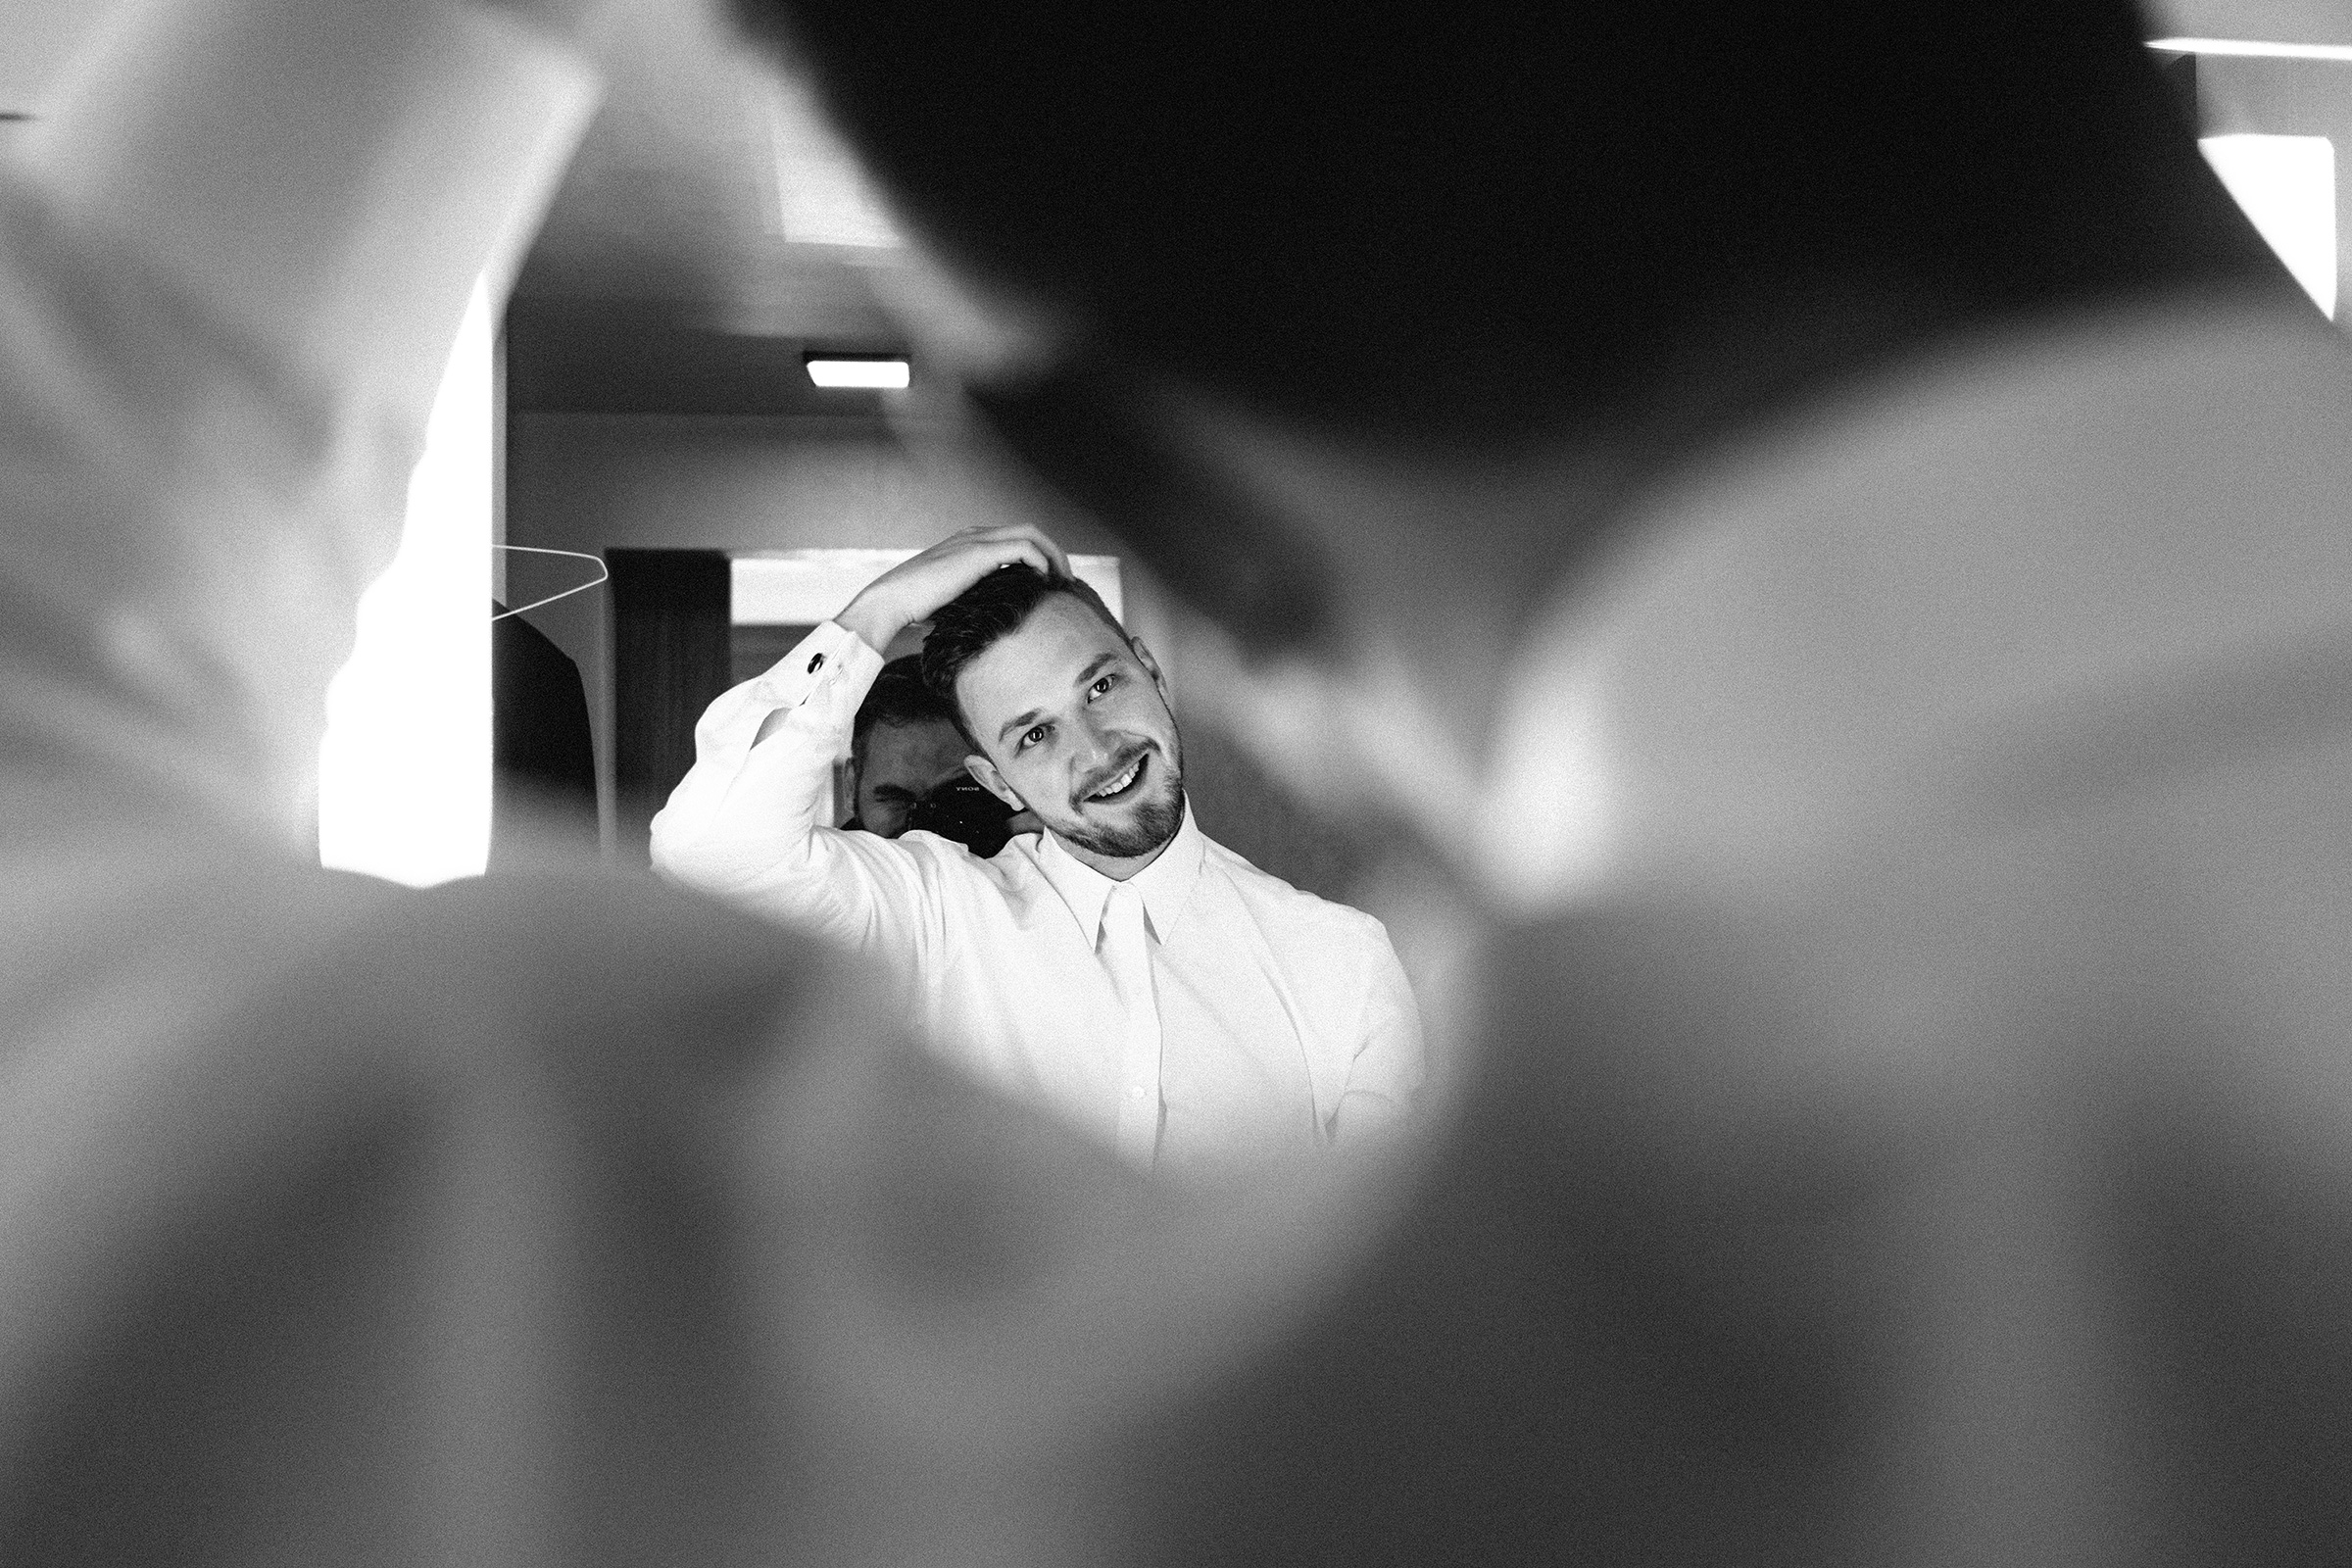 Creative composition of groom in mirror - photo by Bradley Hanson Photography